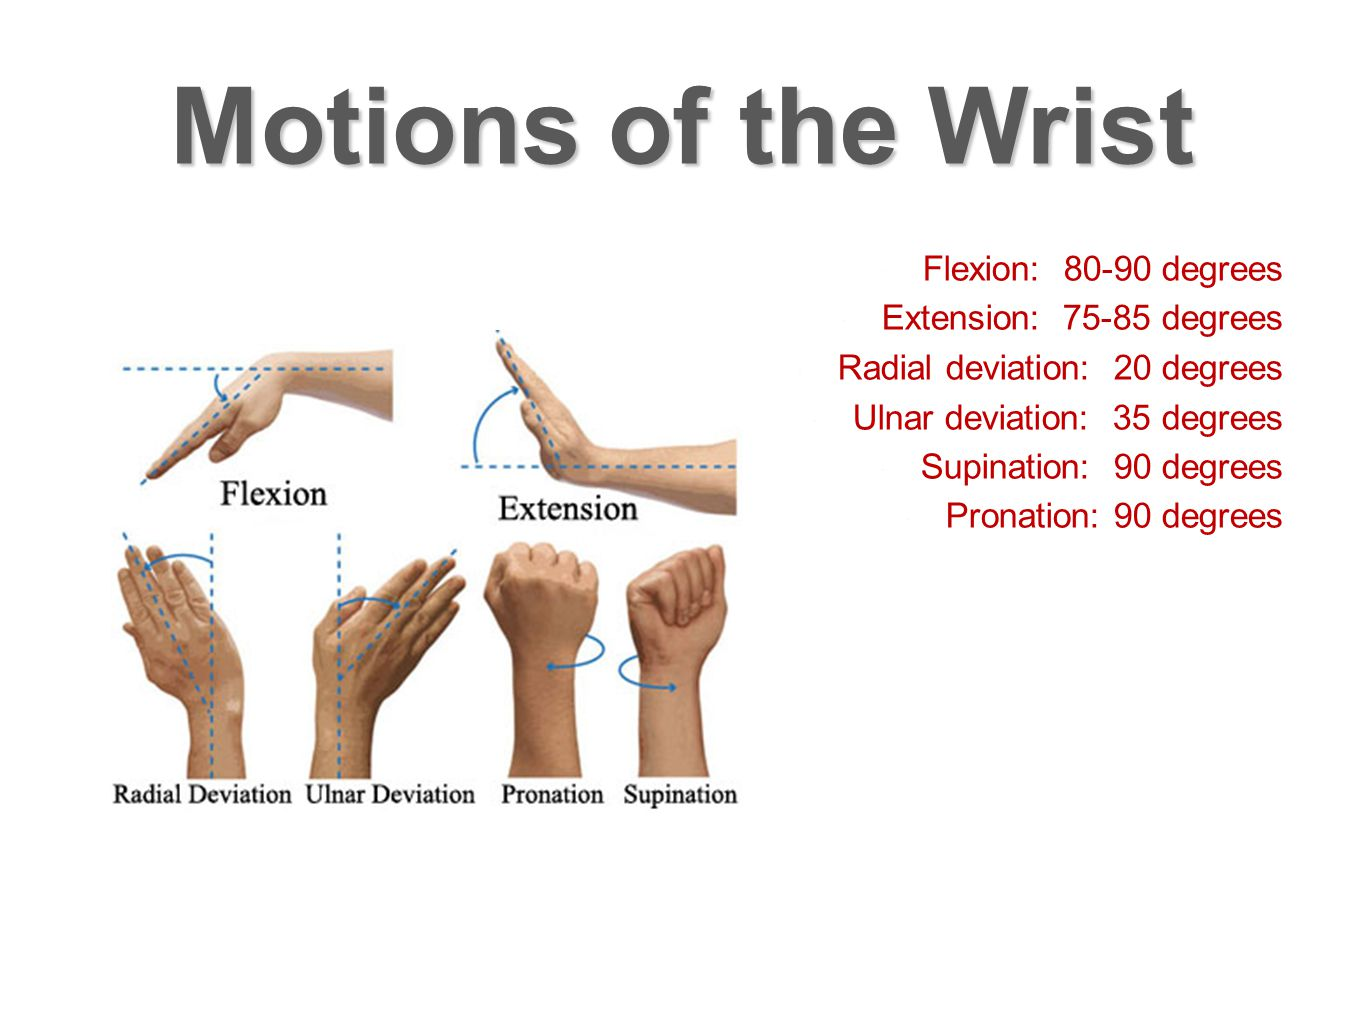 Motions of the Wrist Flexion: 80-90 degrees Extension: 75-85 degrees